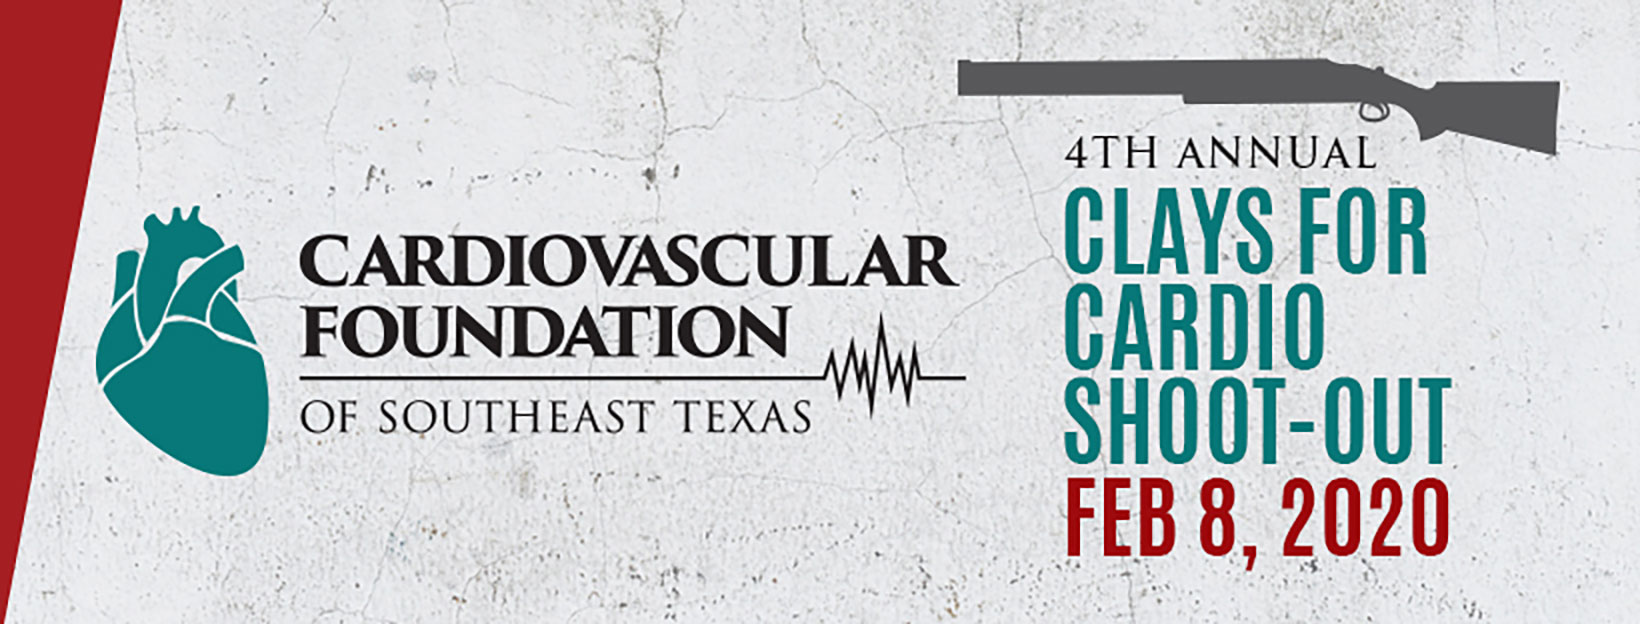 4th Annual Cardiovascular Foundation Shoot-Out